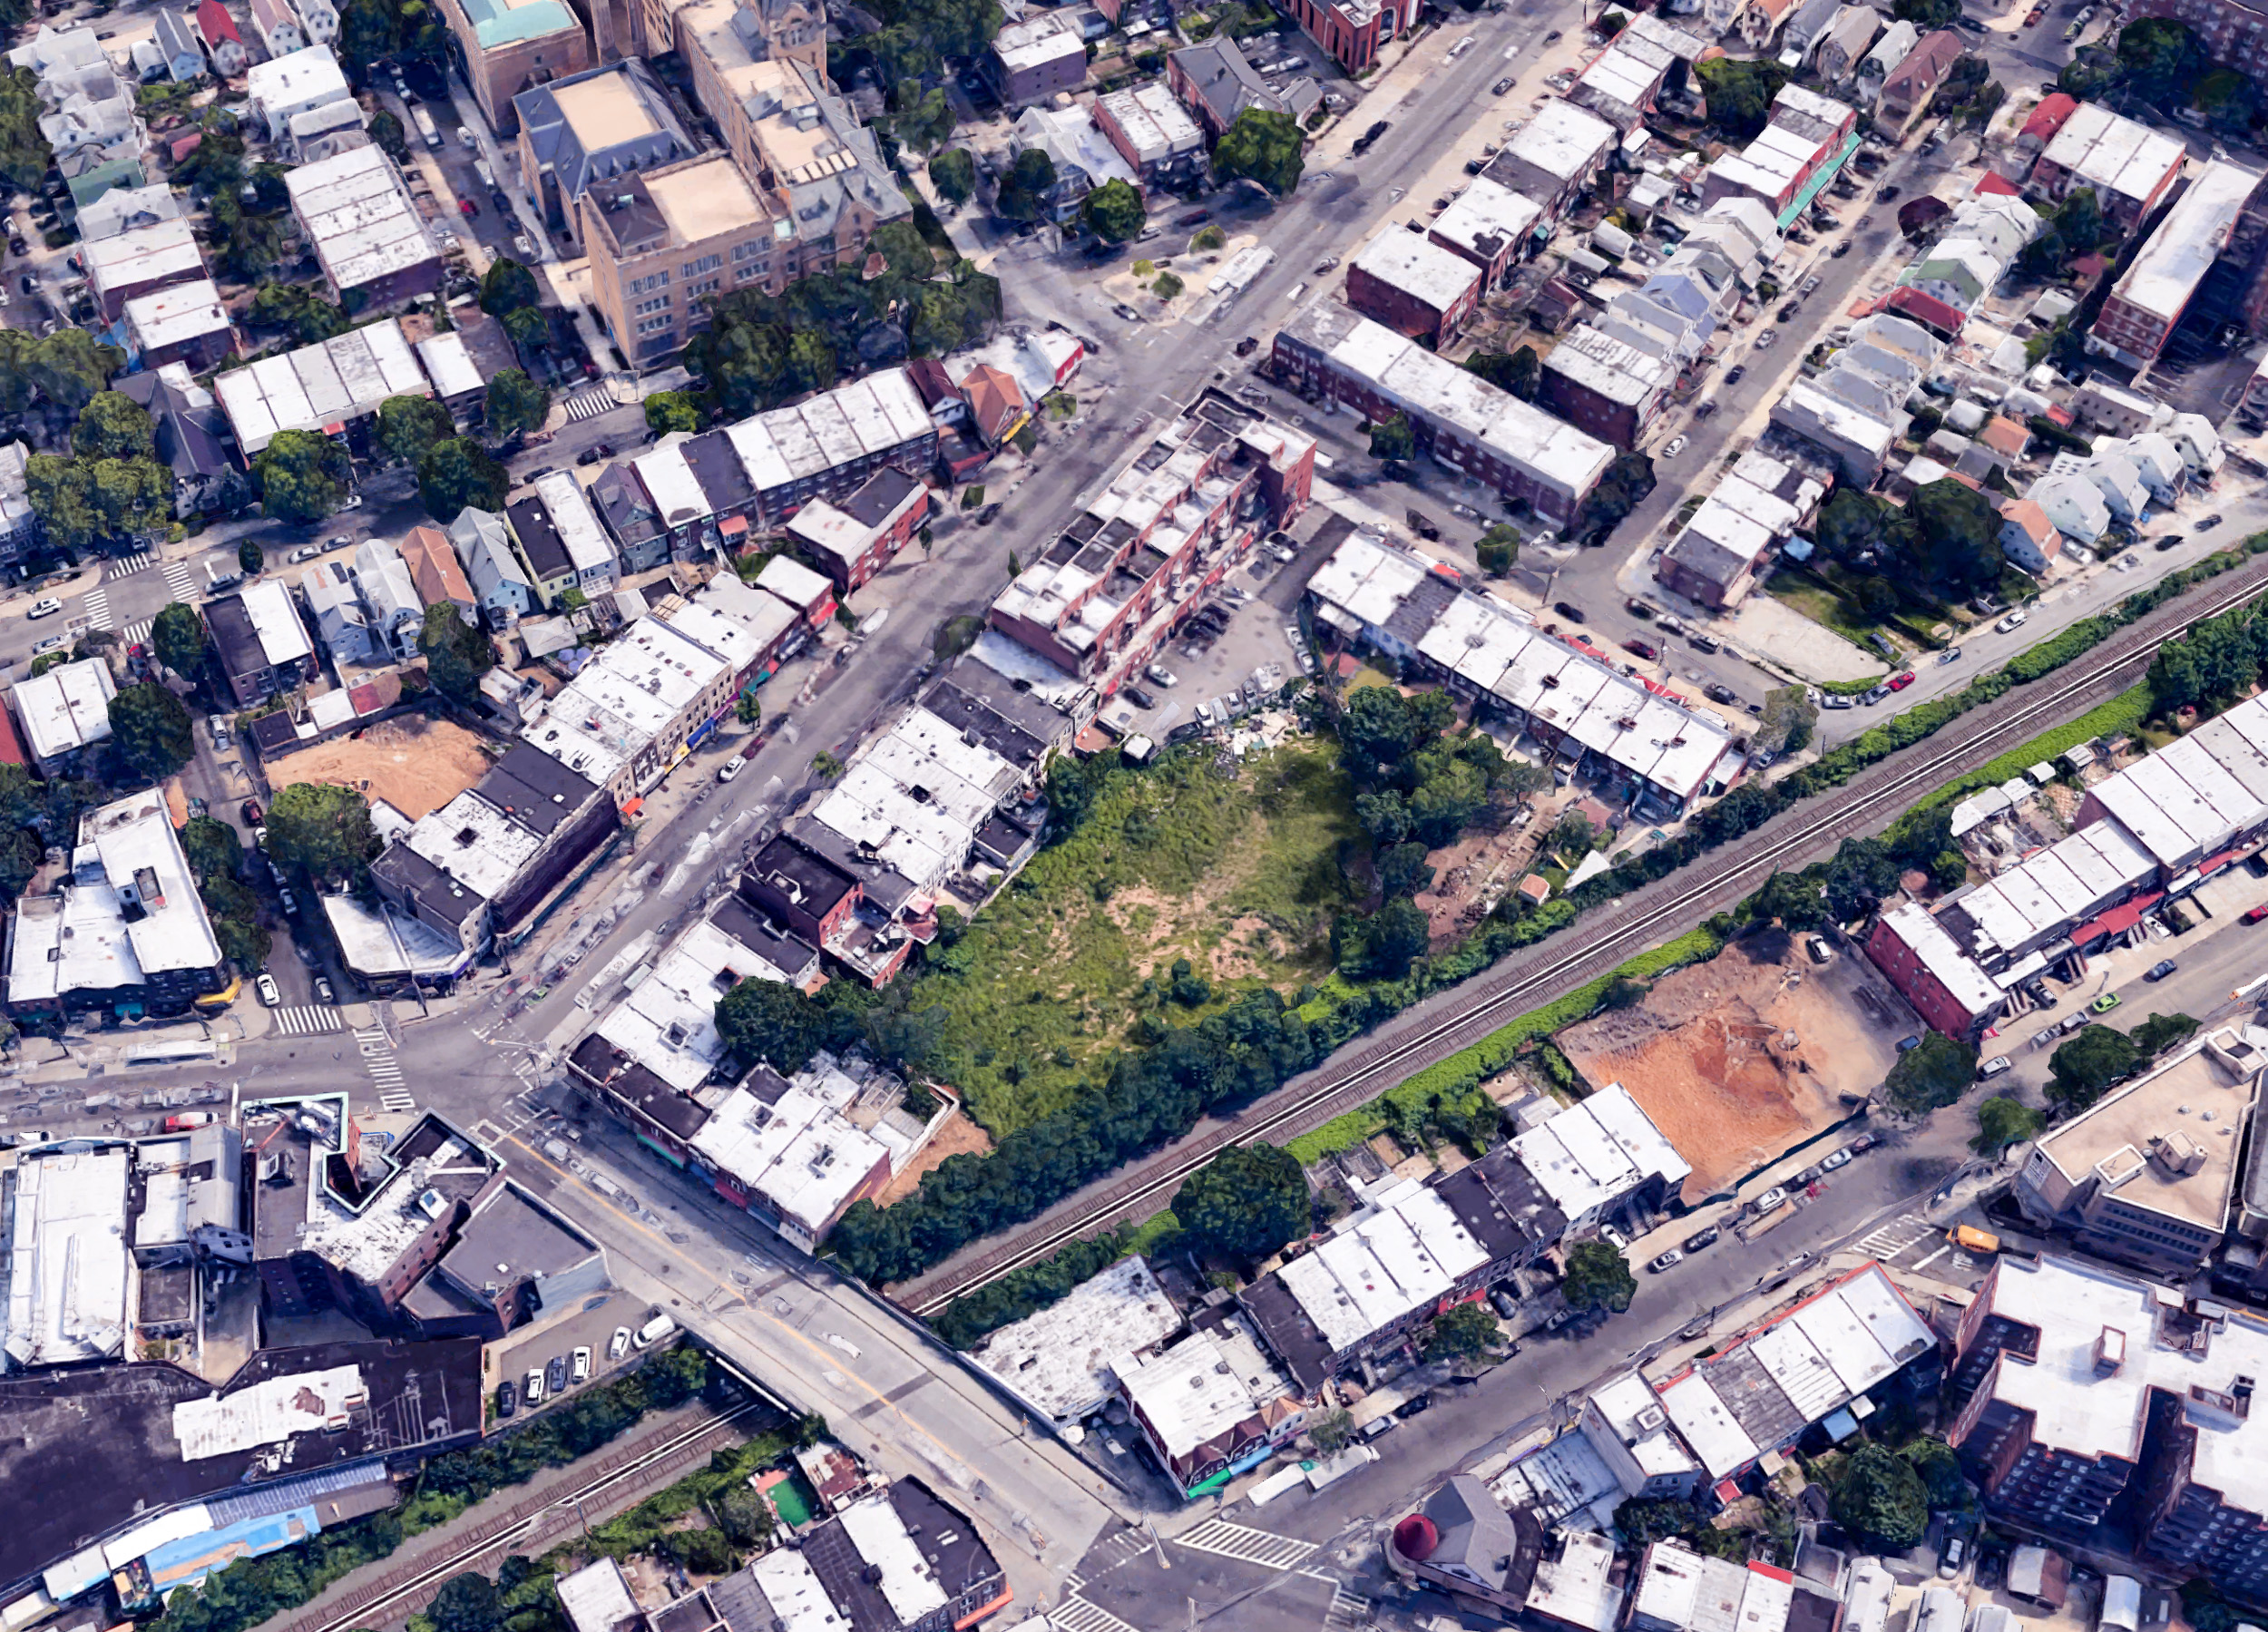 47-11 90th Street size, via Google Satellite